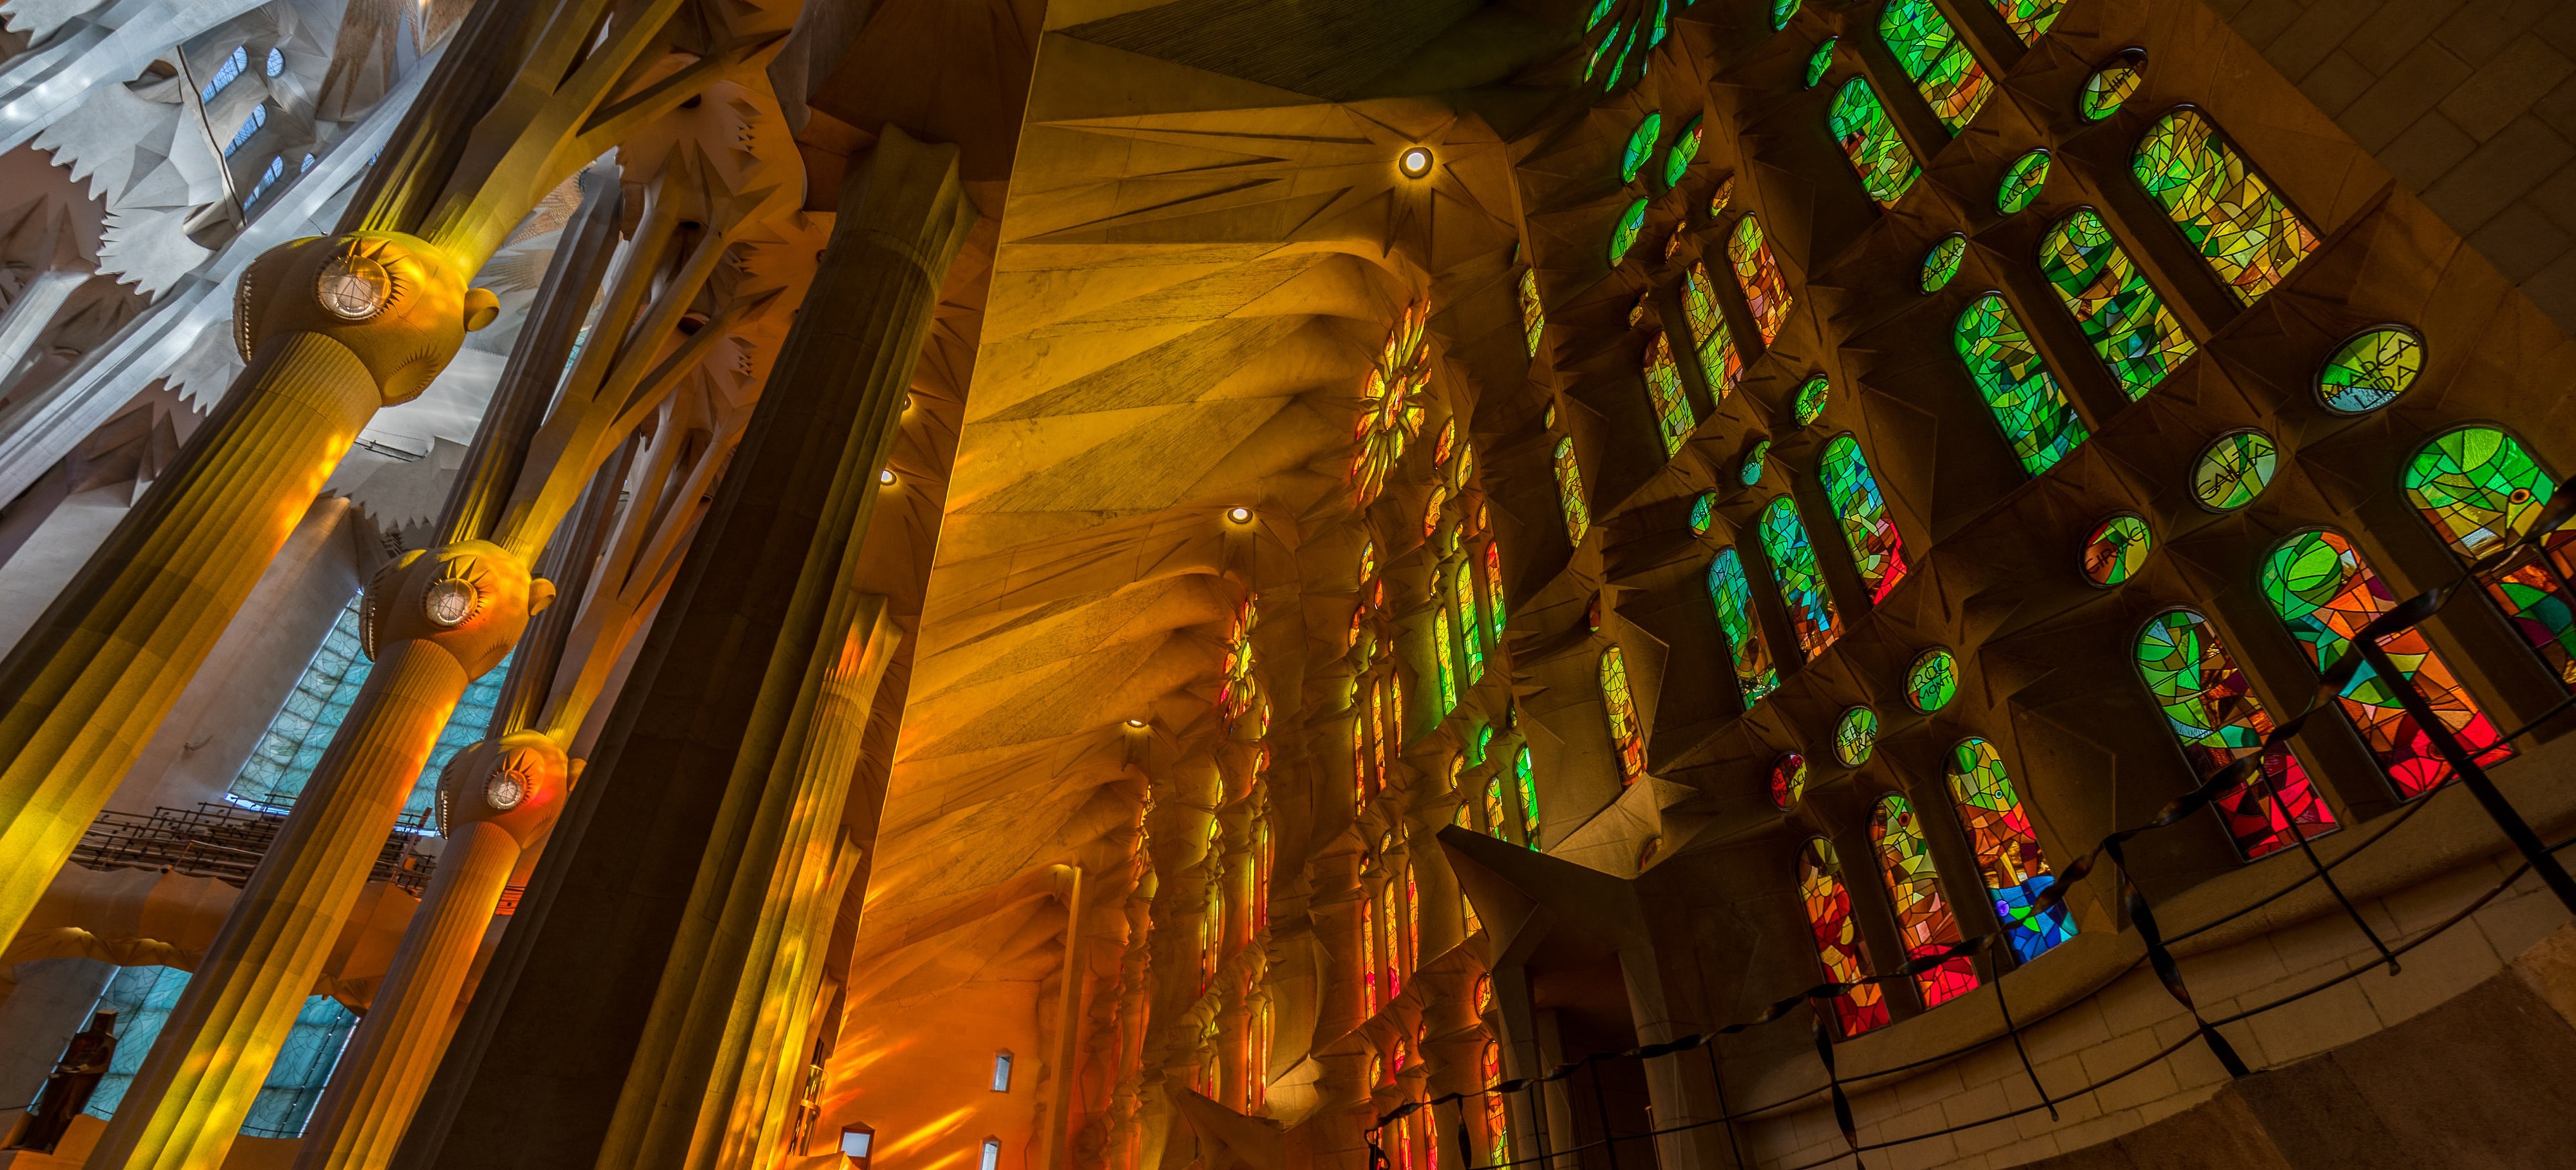 Interior of La Sagrada Familia, Barcelona, Catalonia, Spain